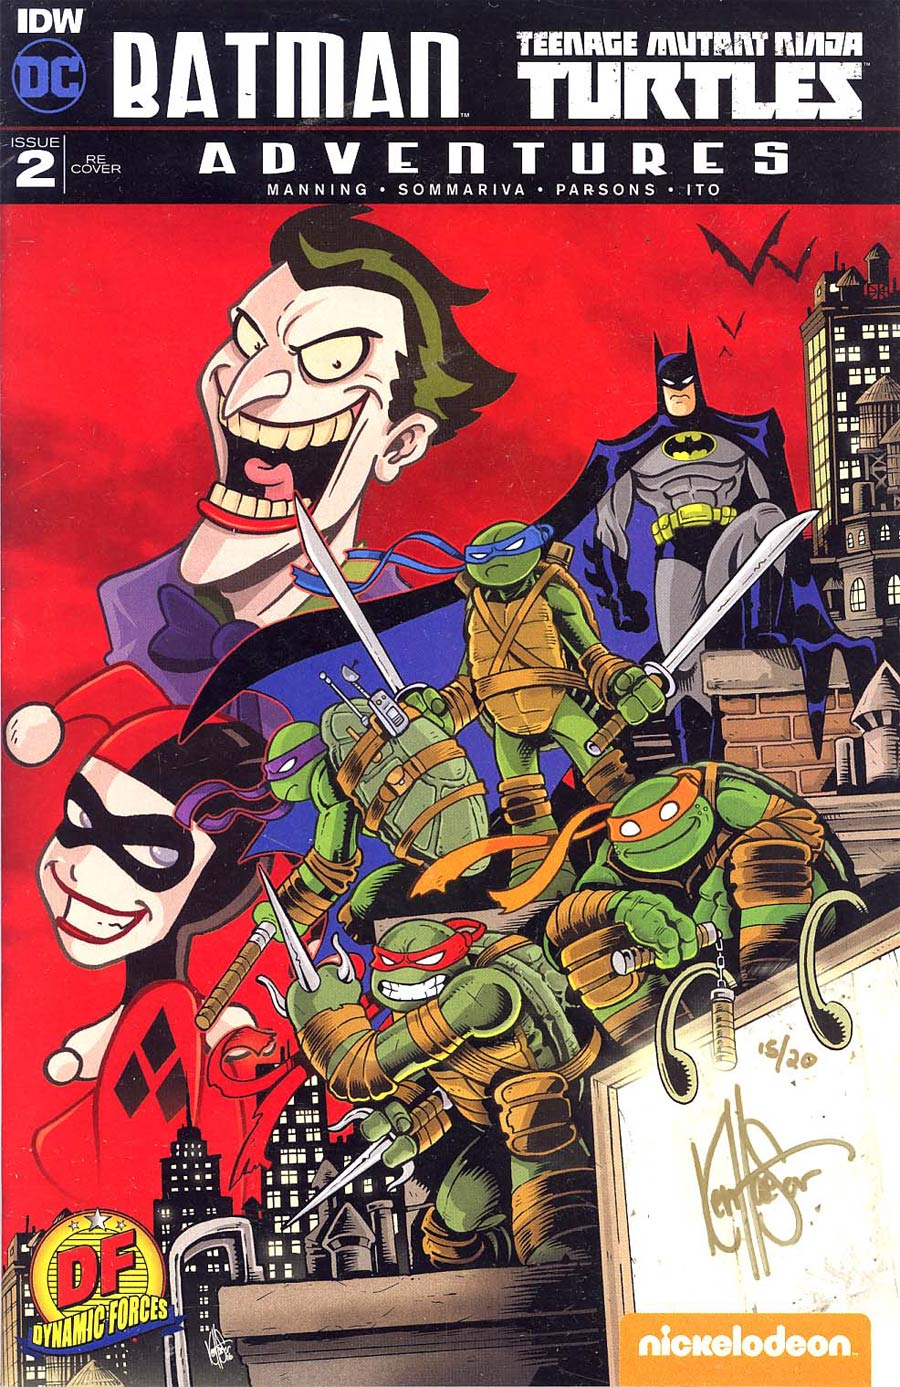 Batman Teenage Mutant Ninja Turtles Adventures #2 Cover F DF Exclusive Ken Haeser Variant Cover Signed By Ken Haeser